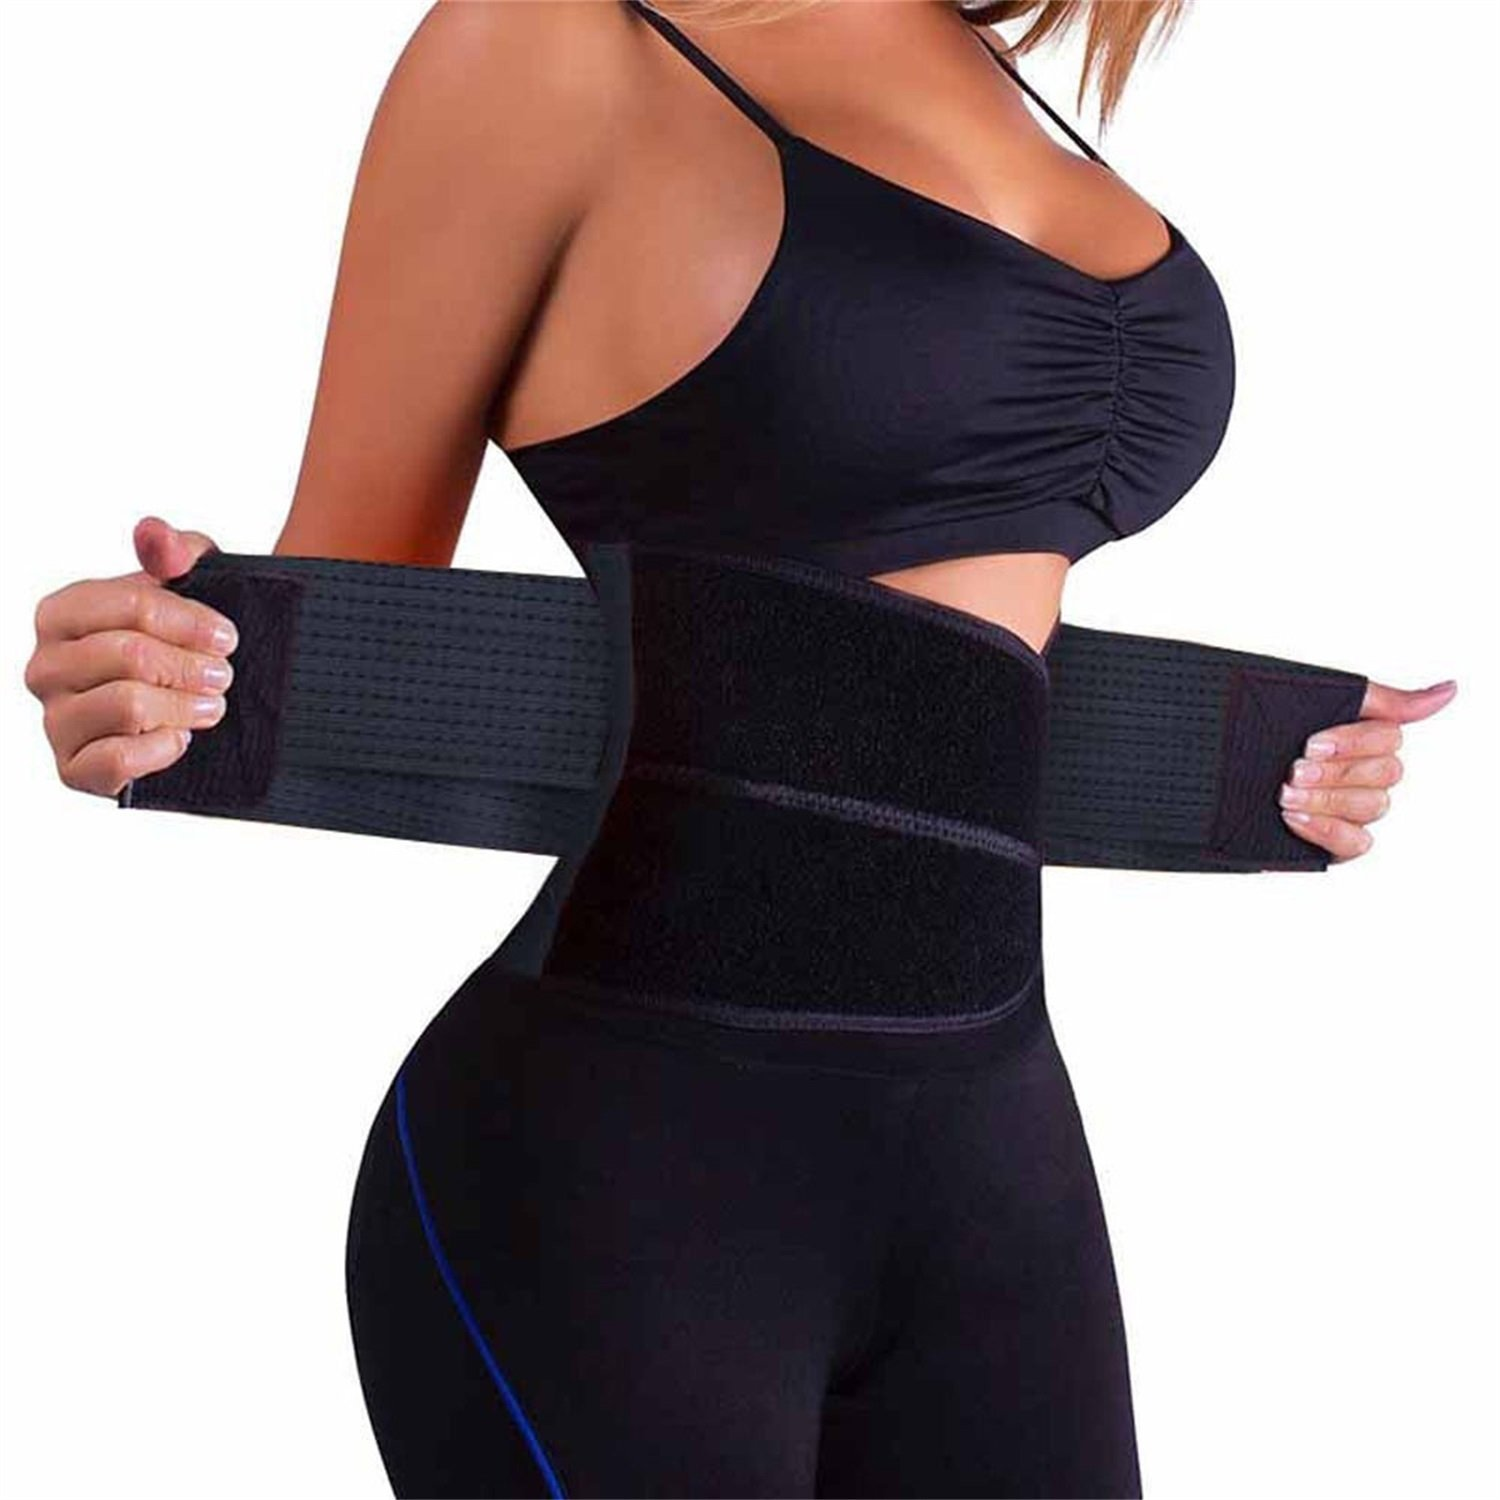 7b68d48cc7 VENUZOR Waist Trainer Belt for Women - Waist Cincher Trimmer - Slimming  Body Shaper Belt - Sport Girdle Belt (up Graded)  Amazon.ca  Sports    Outdoors